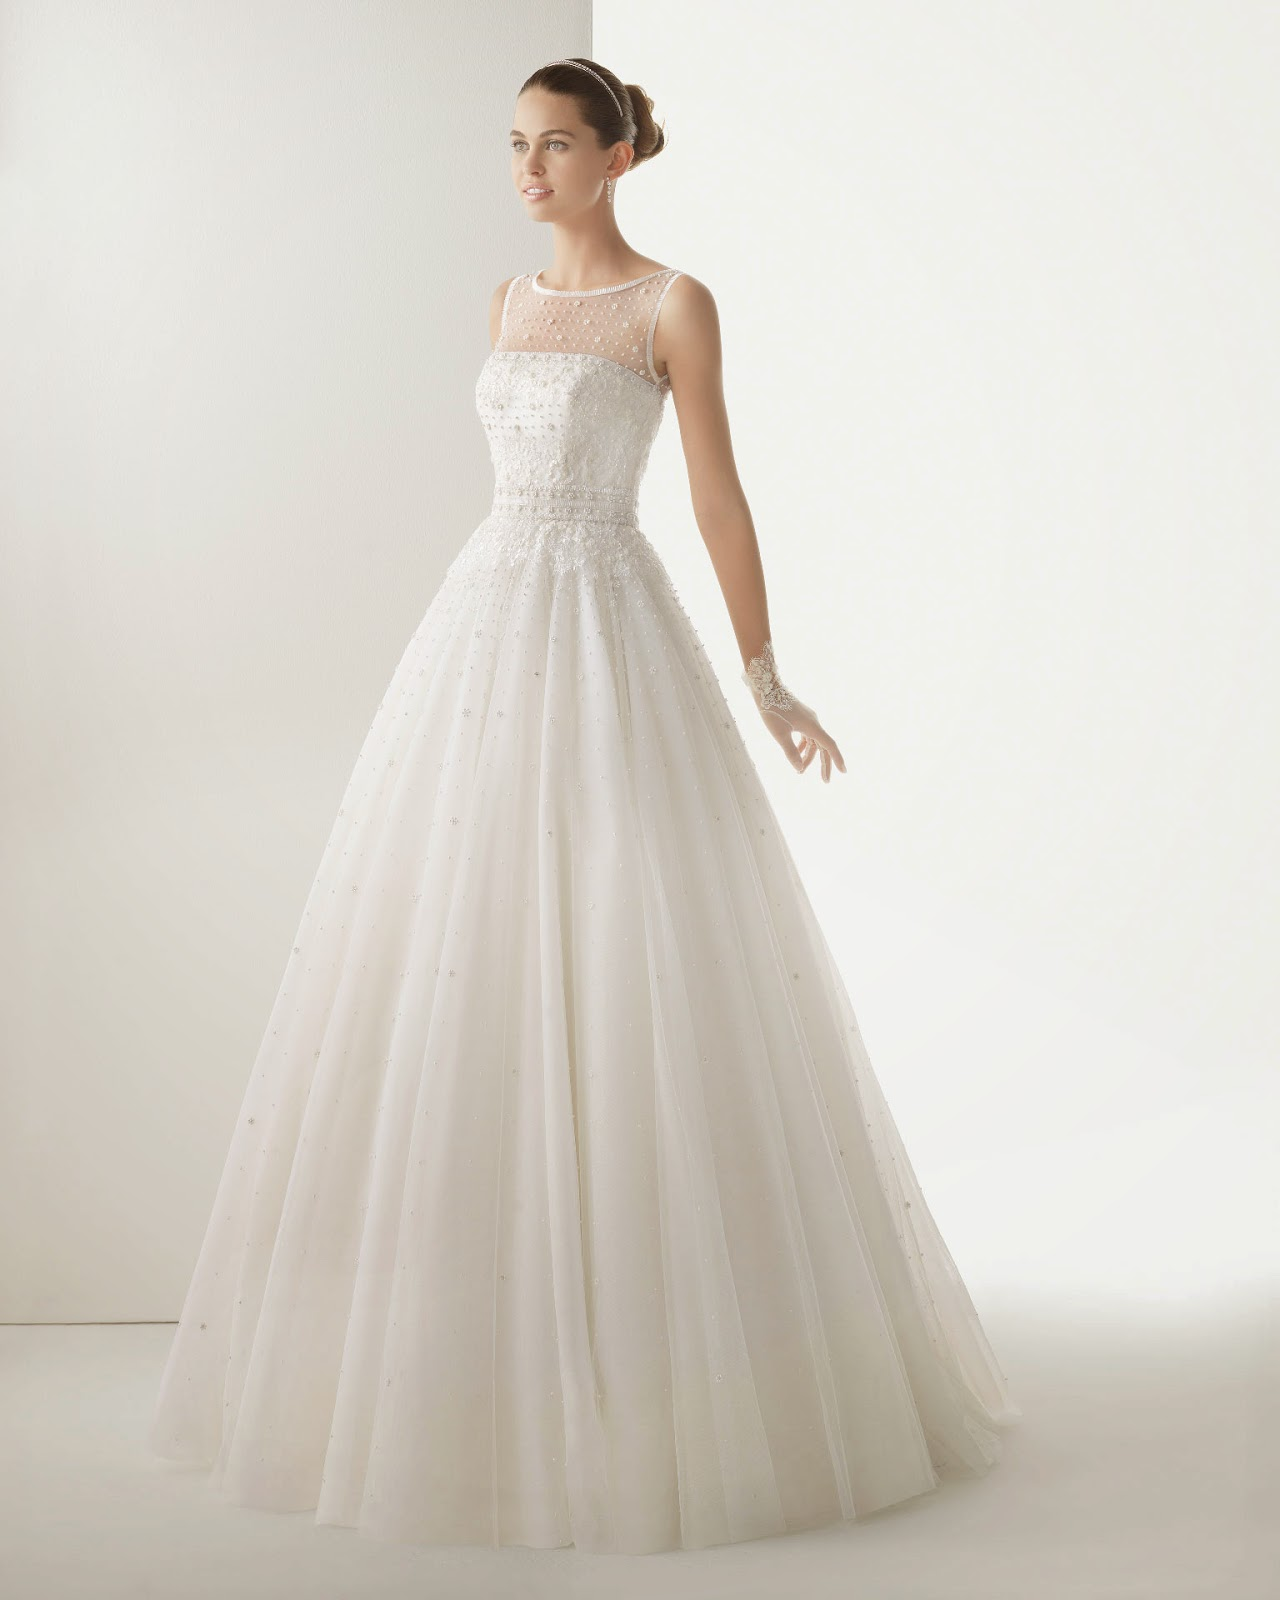 Amazing Dinner Gown Rental In Kl Gift - Ball Gown Wedding Dresses ...